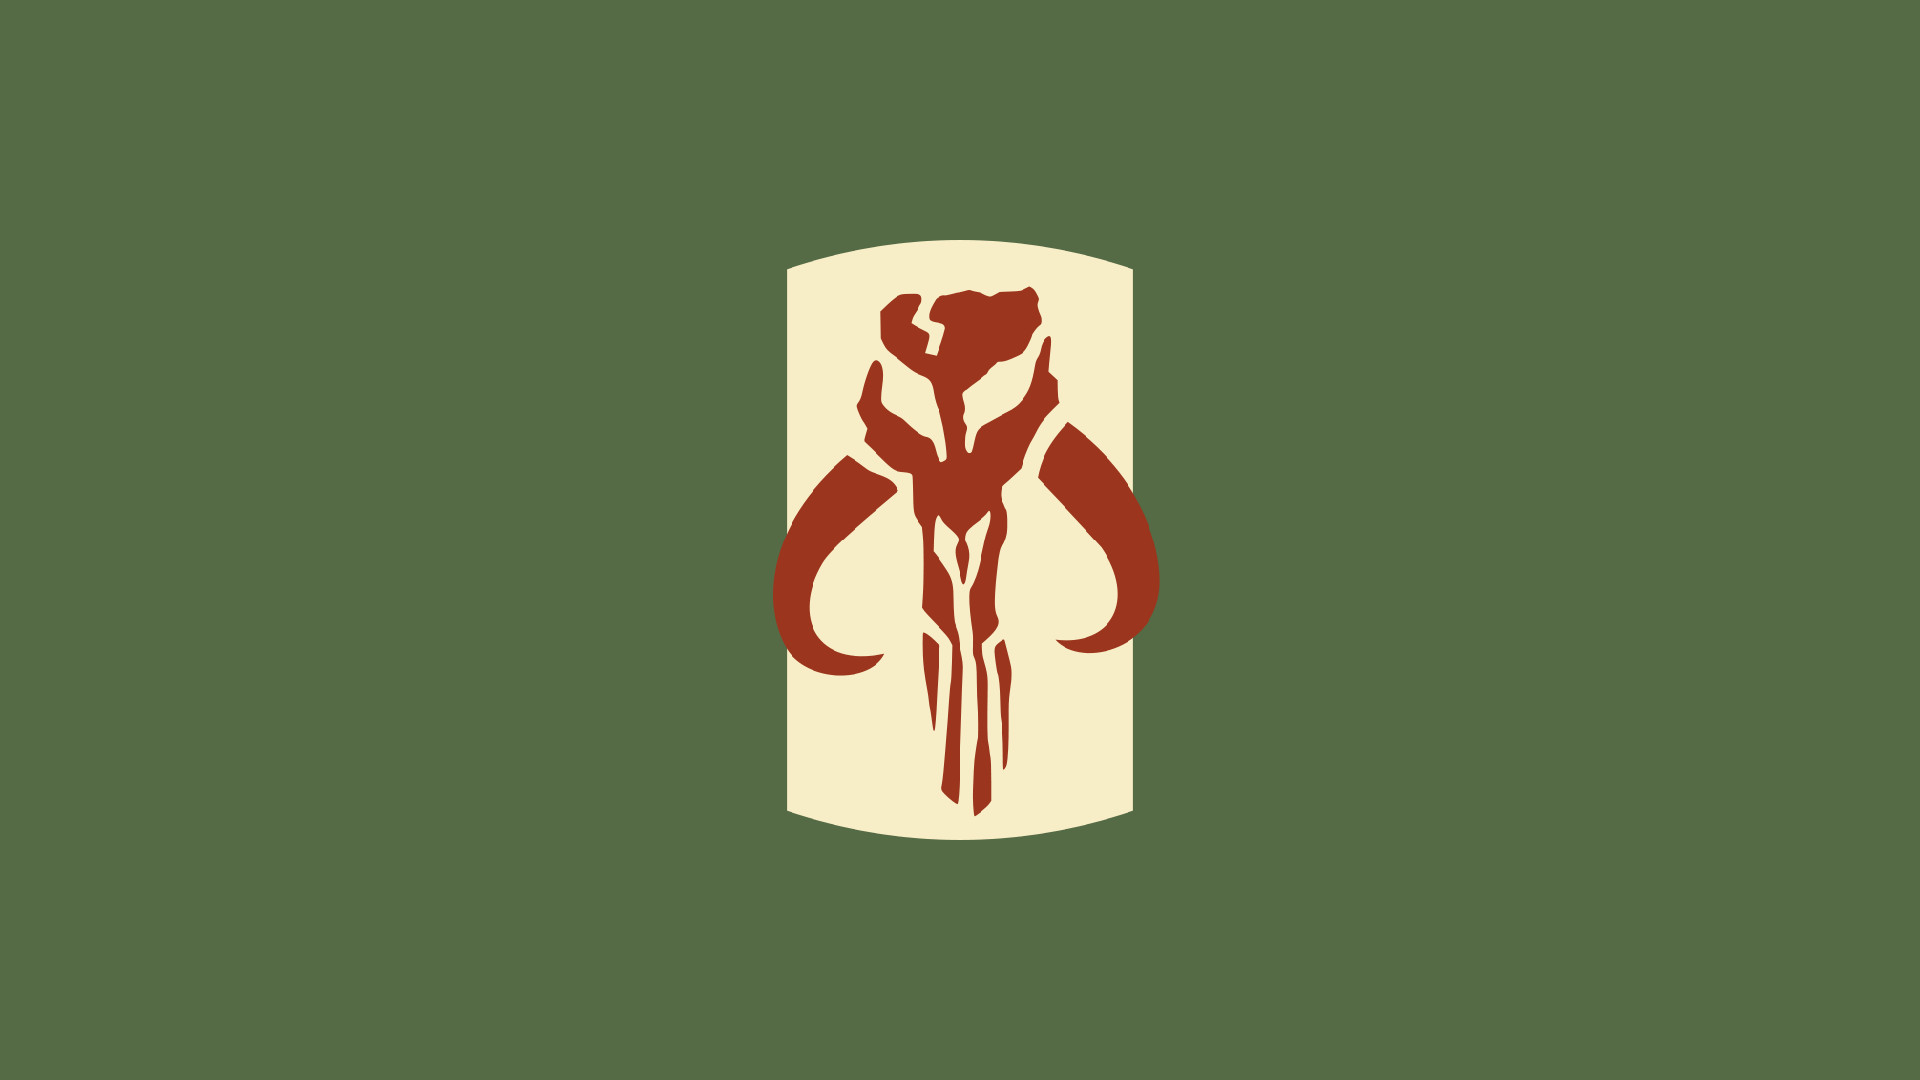 The one in the center is the Mandalorian …